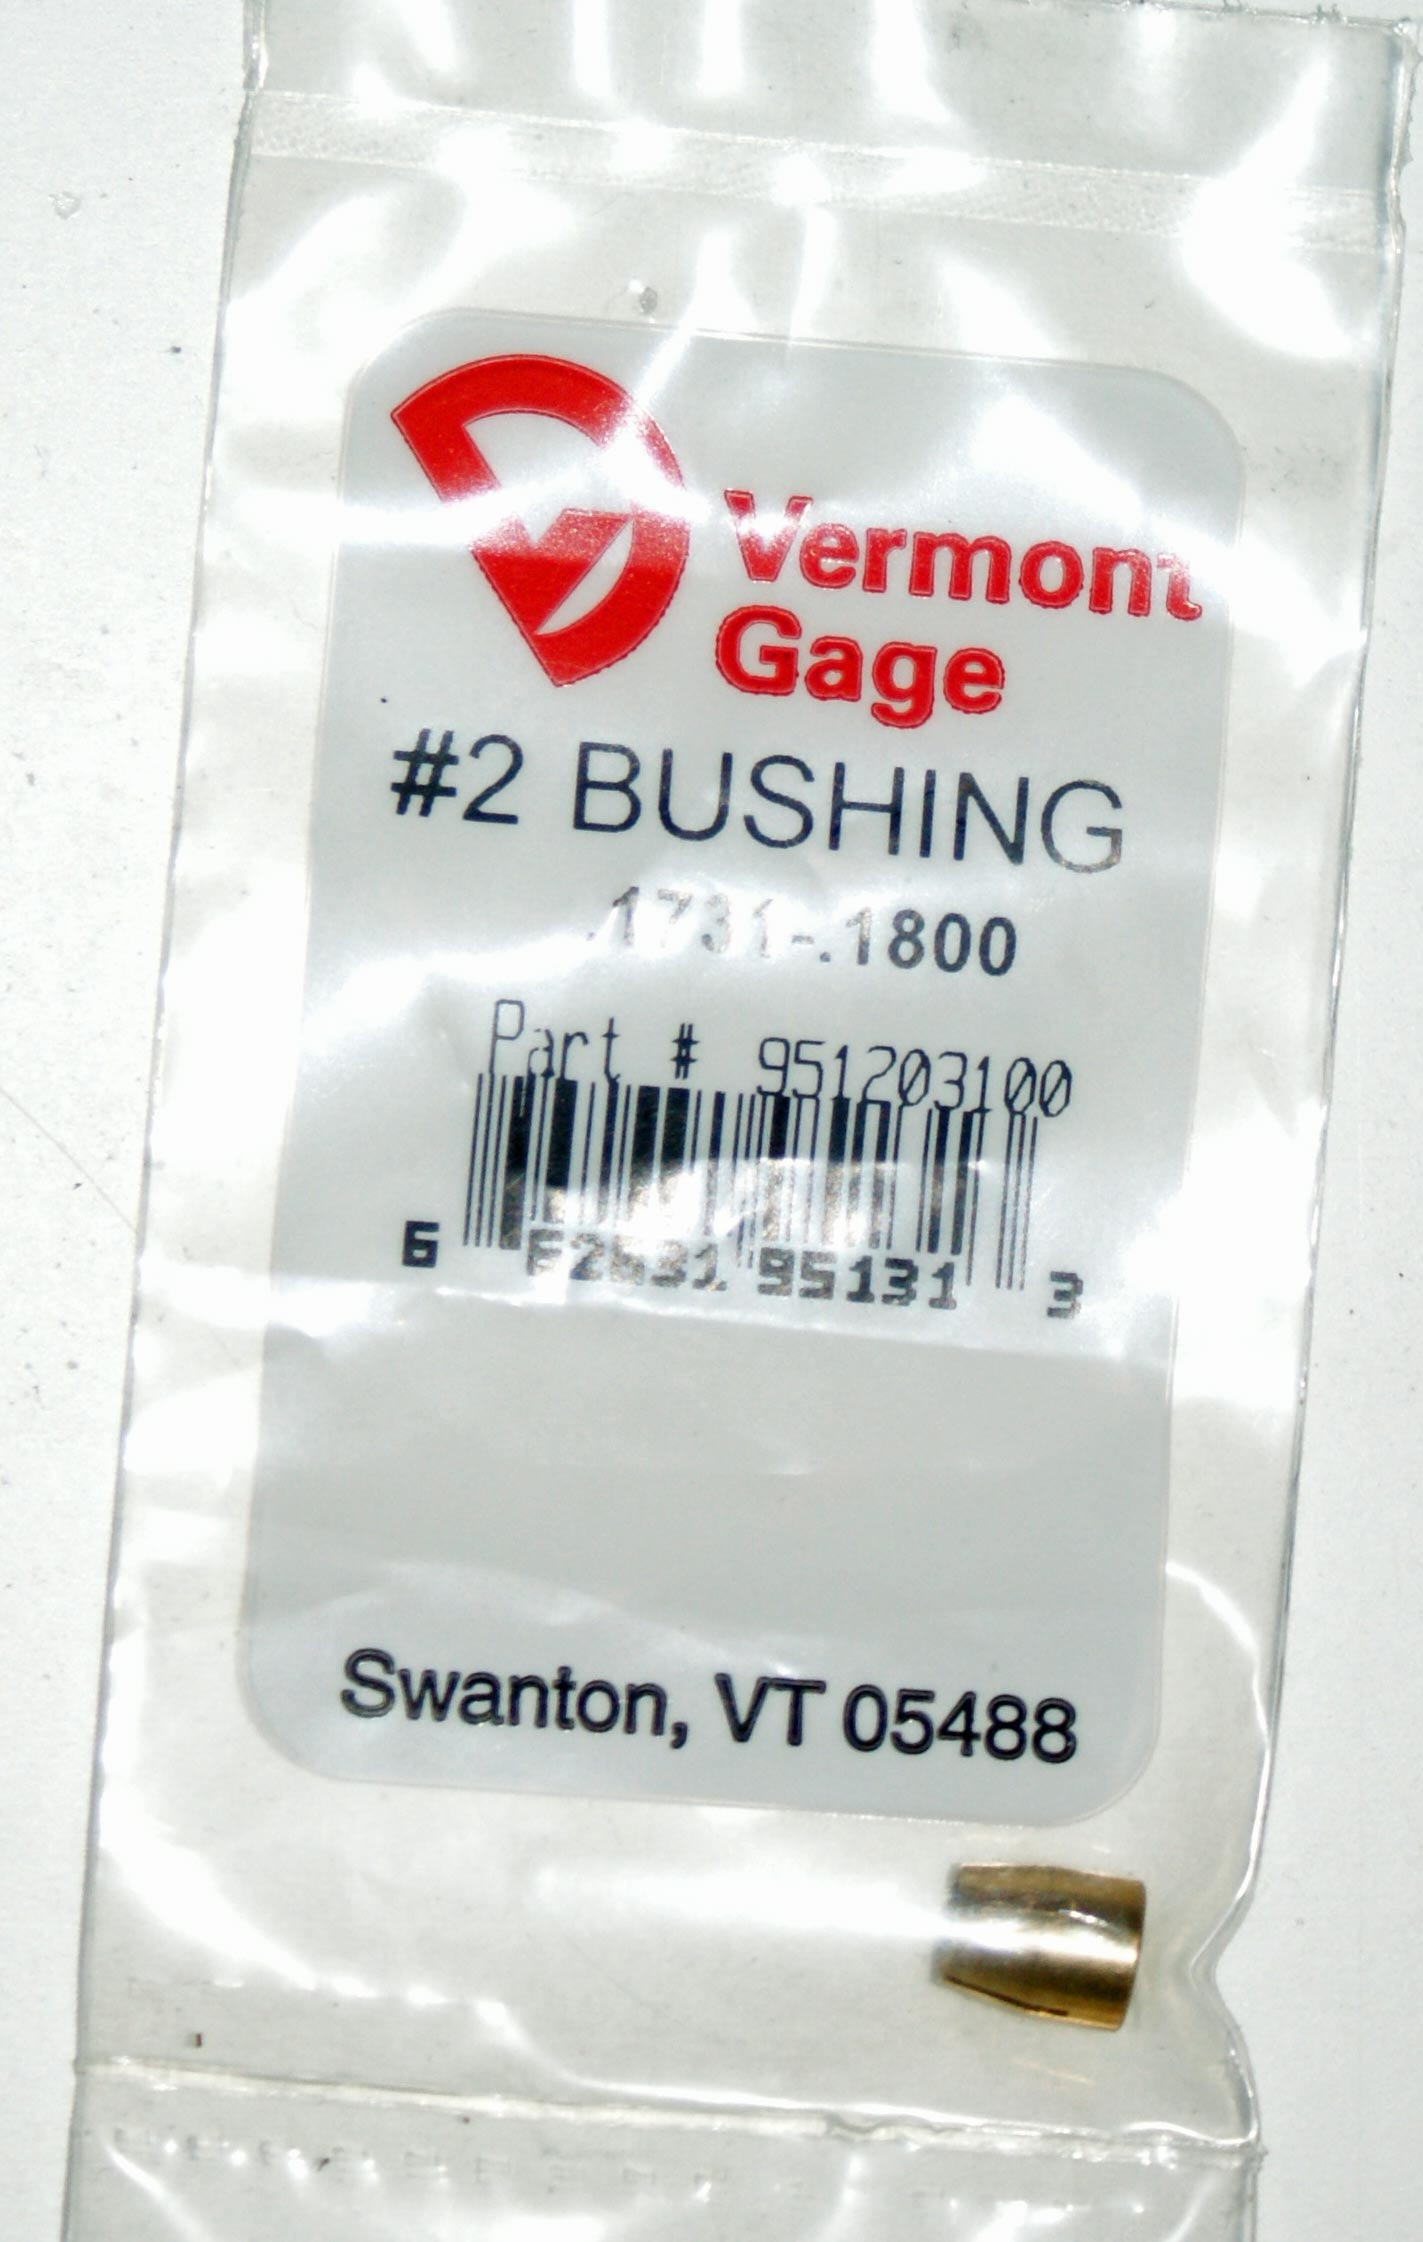 "Vermont Gage .1731 - .1800"" #2 Bushing / Collet Pin"